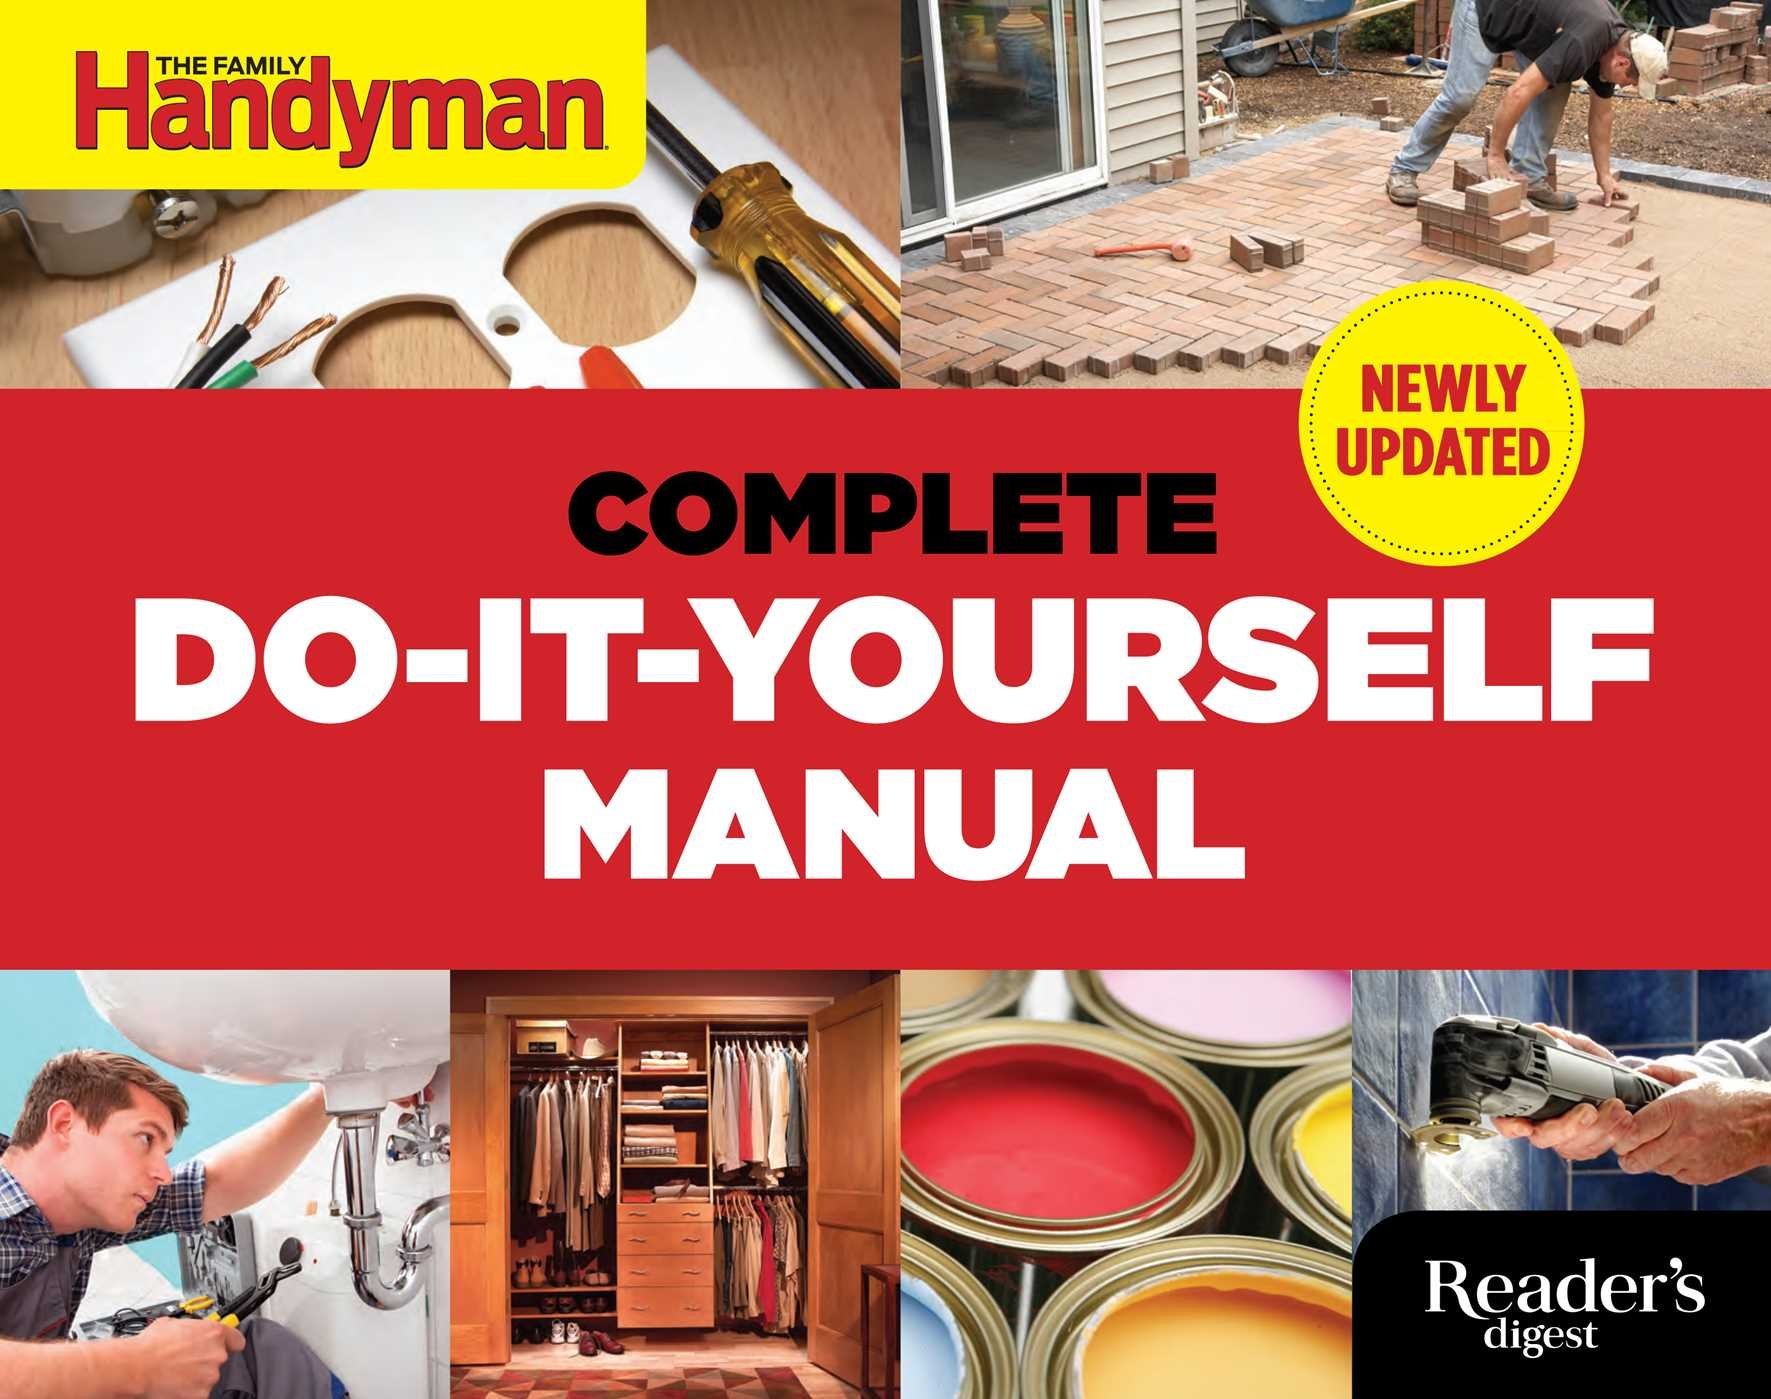 The complete do it yourself manual newly updated editors of family the complete do it yourself manual newly updated editors of family handyman 9781621452010 amazon books solutioingenieria Choice Image